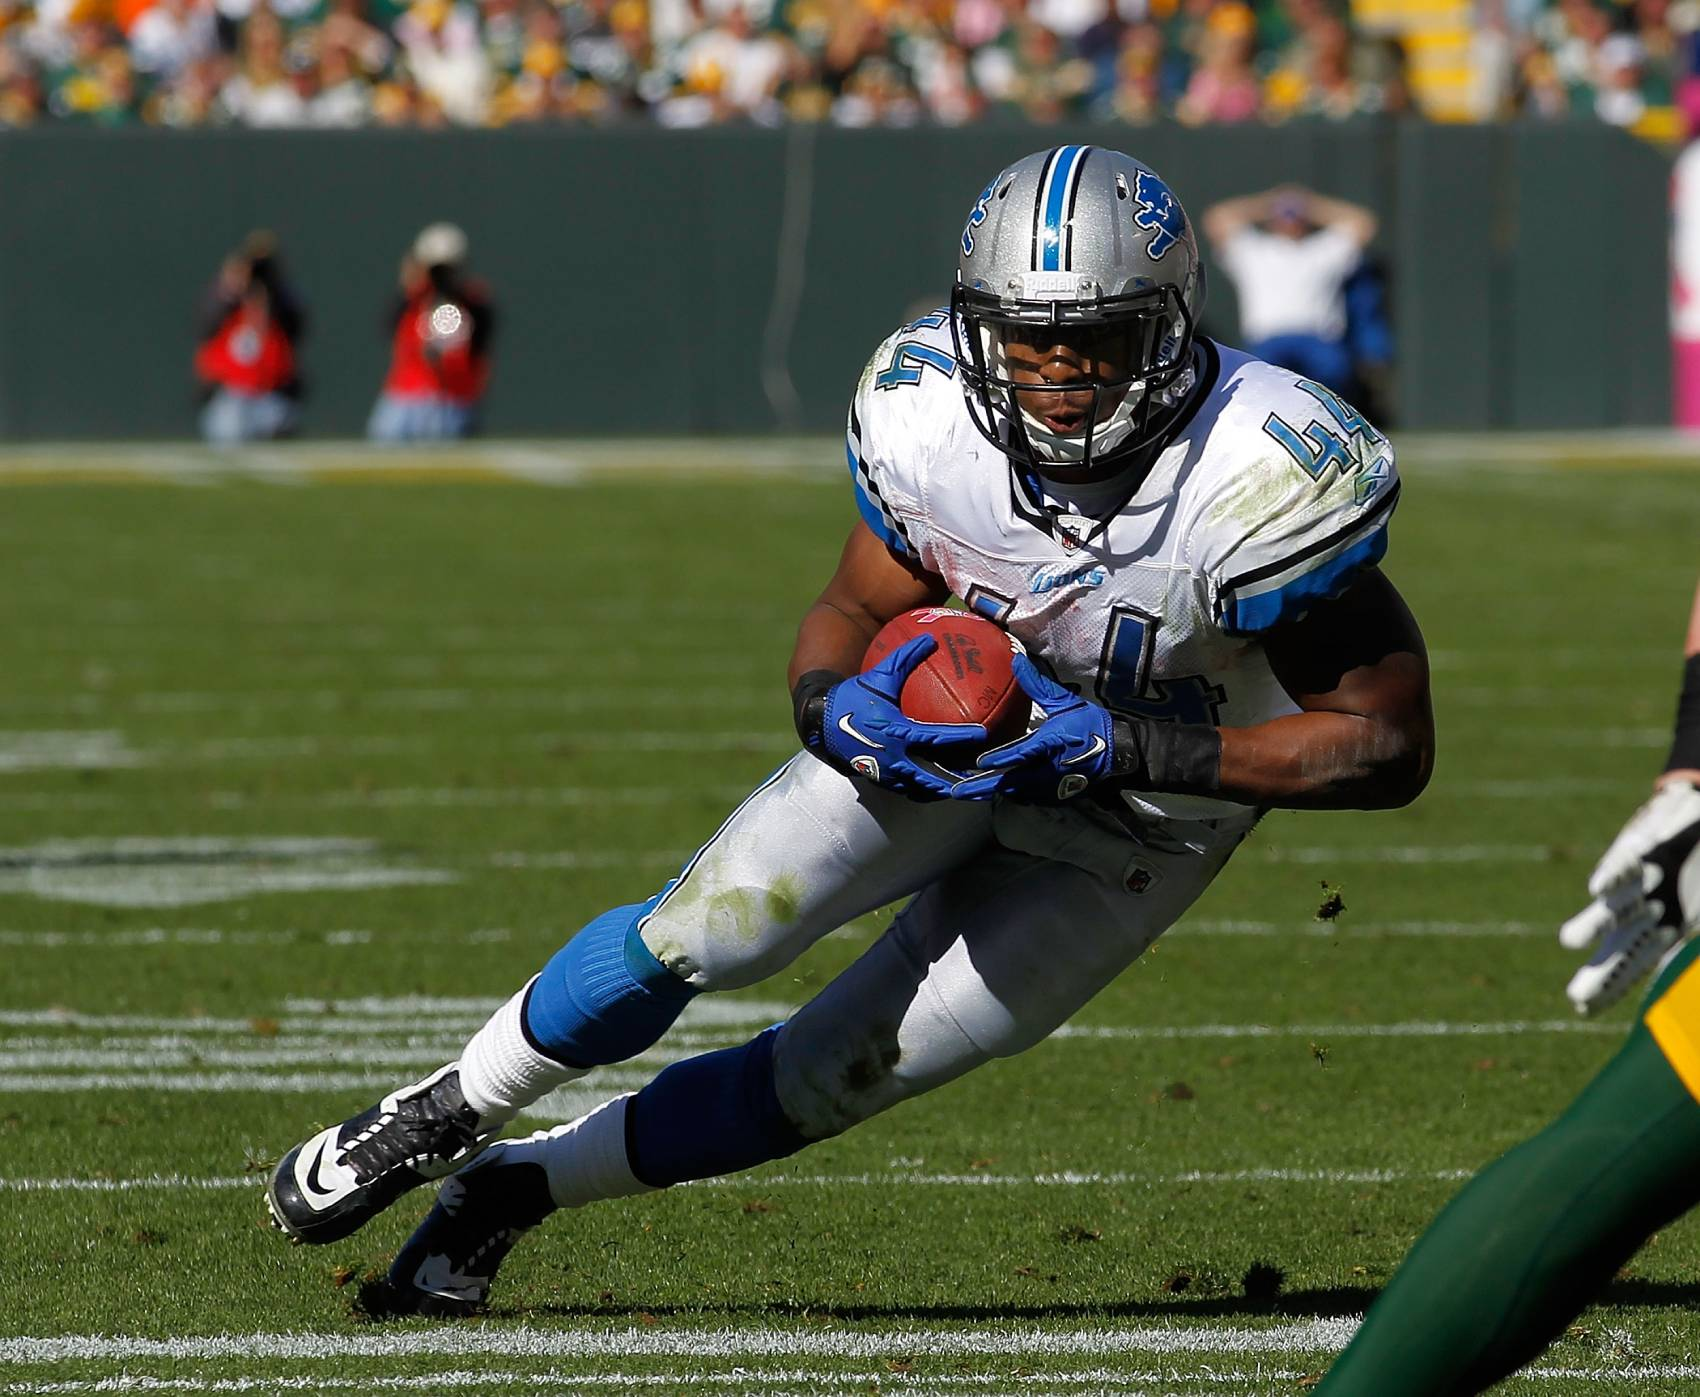 Concussions ruined Jahvid Best's promising NFL career with the Detroit Lions.